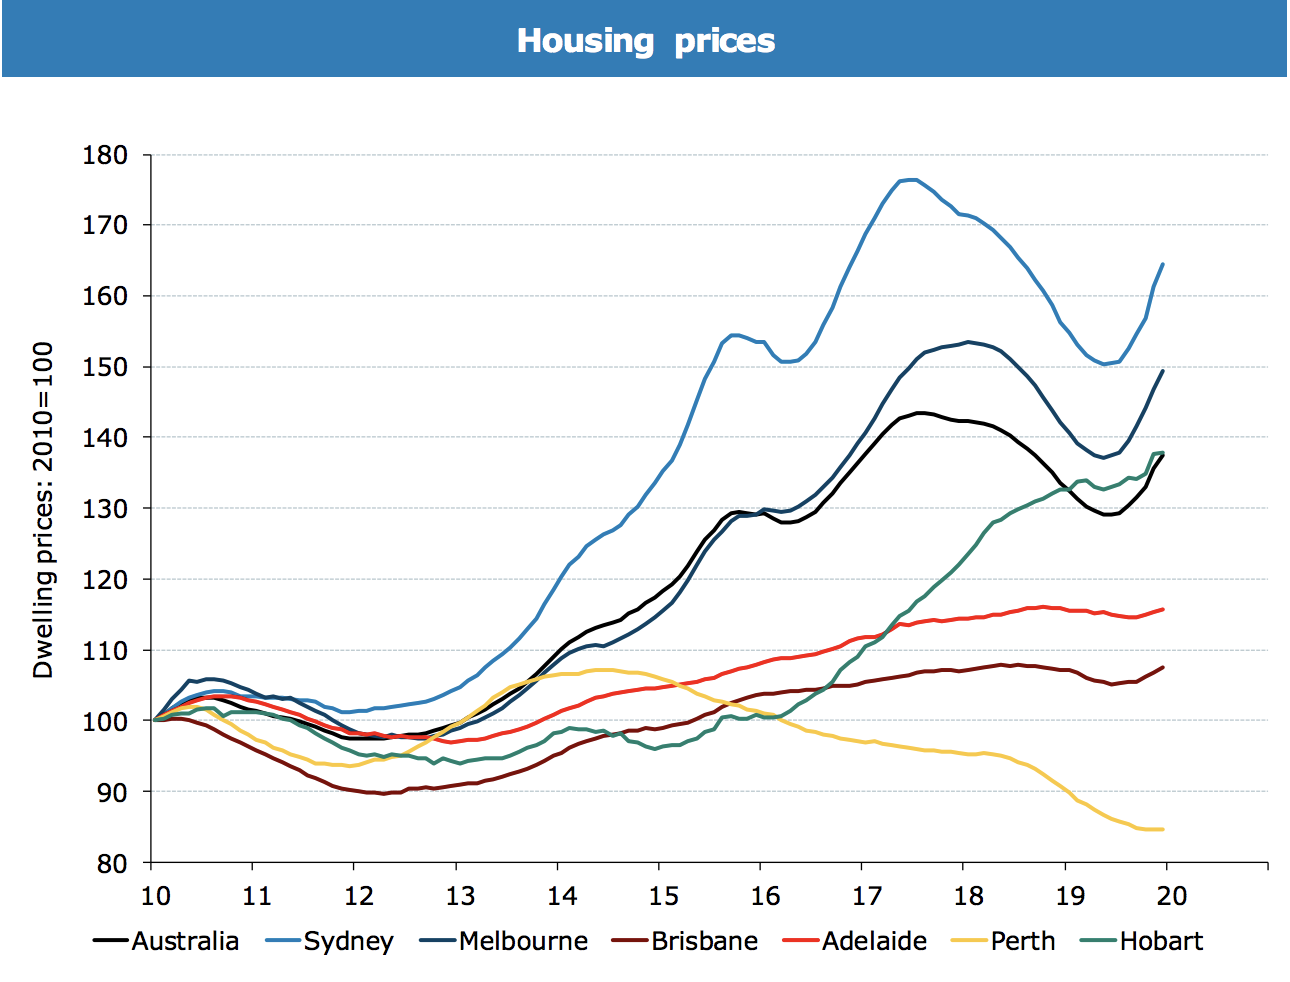 ▲ Melbourne and Sydney, which suffered the largest declines, lead the bounce back.